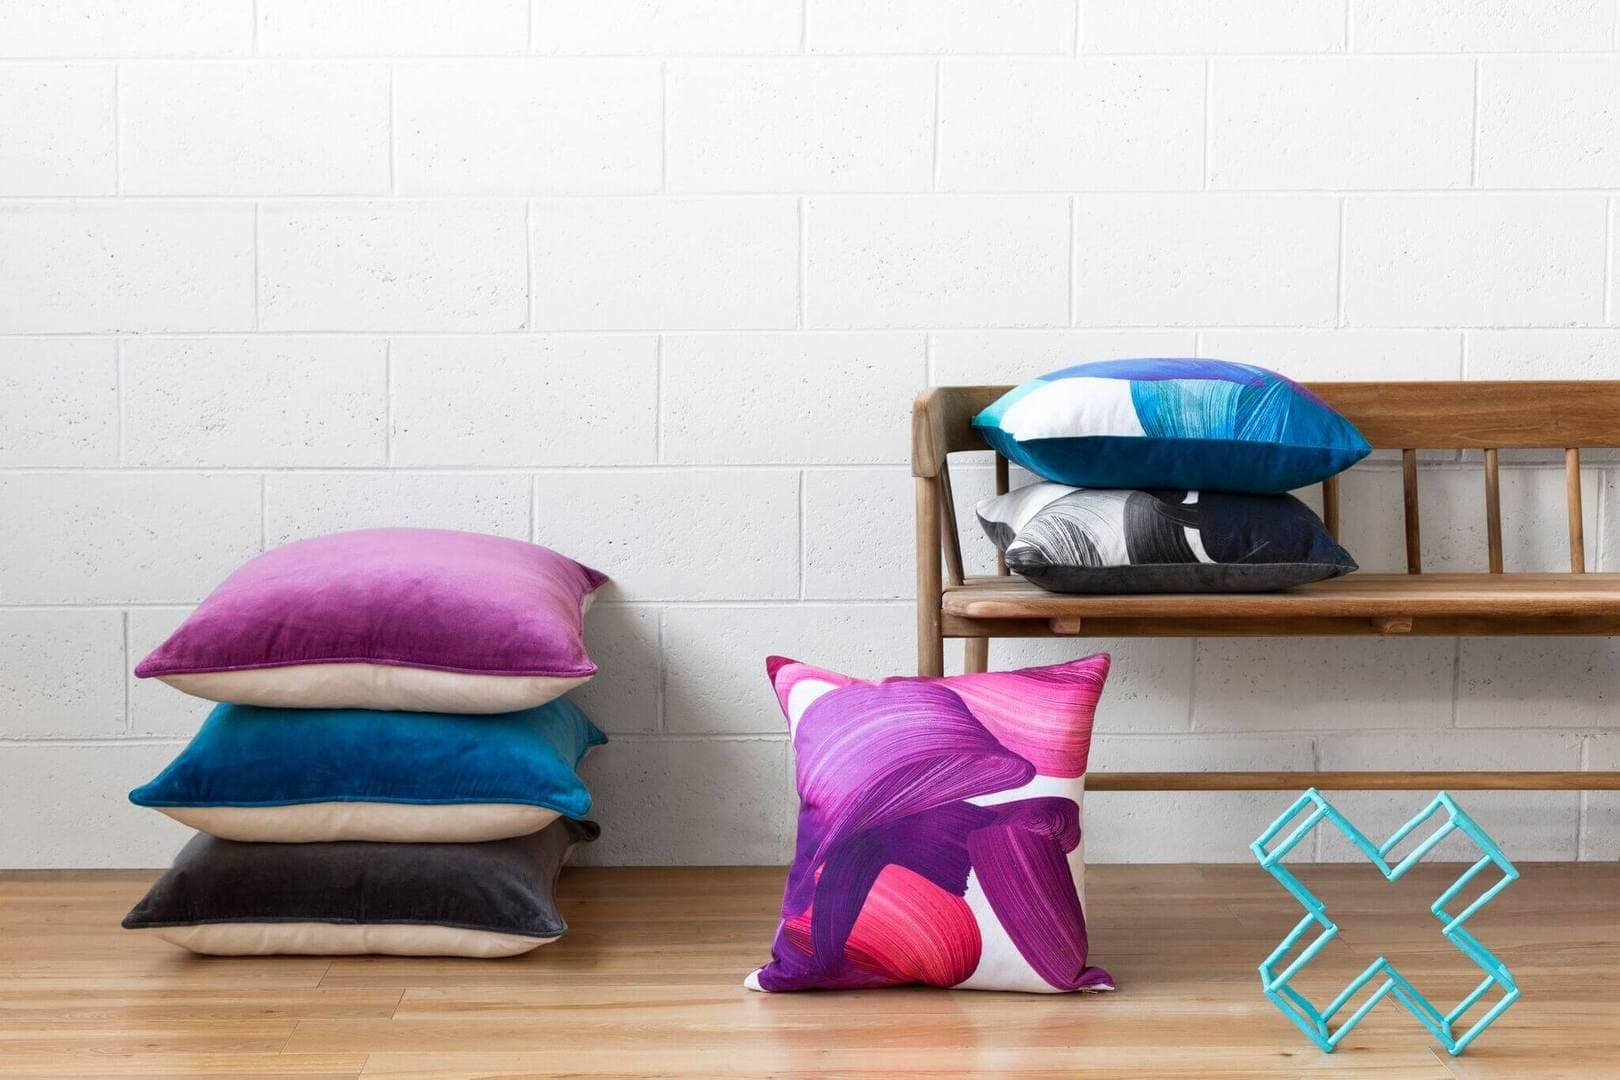 Cushions by Squeak Design on The Life Creative